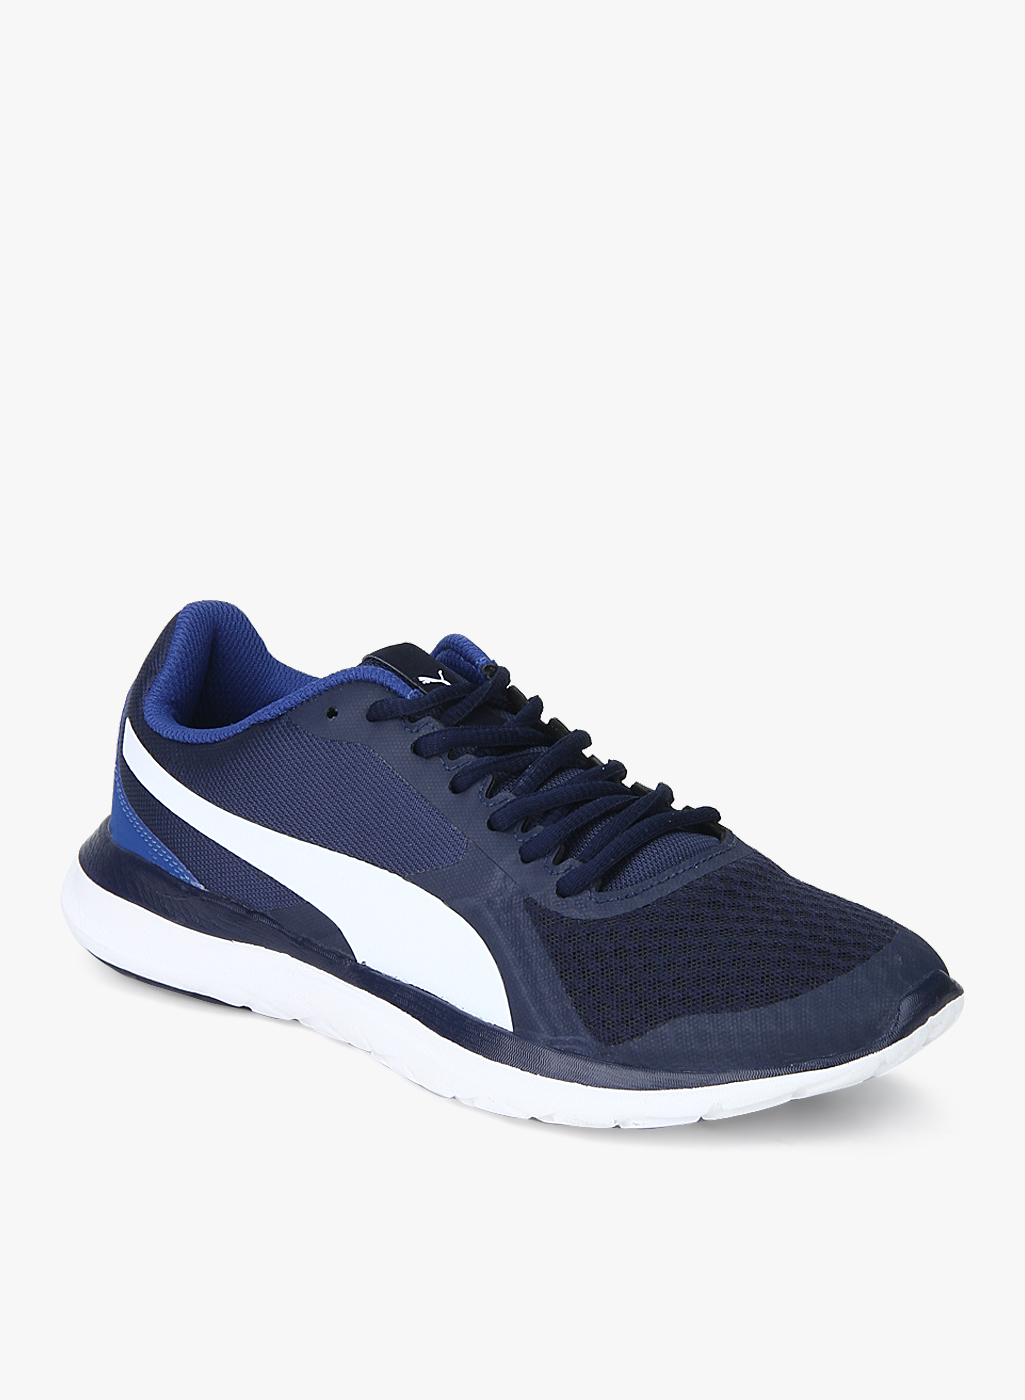 puma running shoes puma flext1 idp navy blue running shoes price in india ORWBJCN